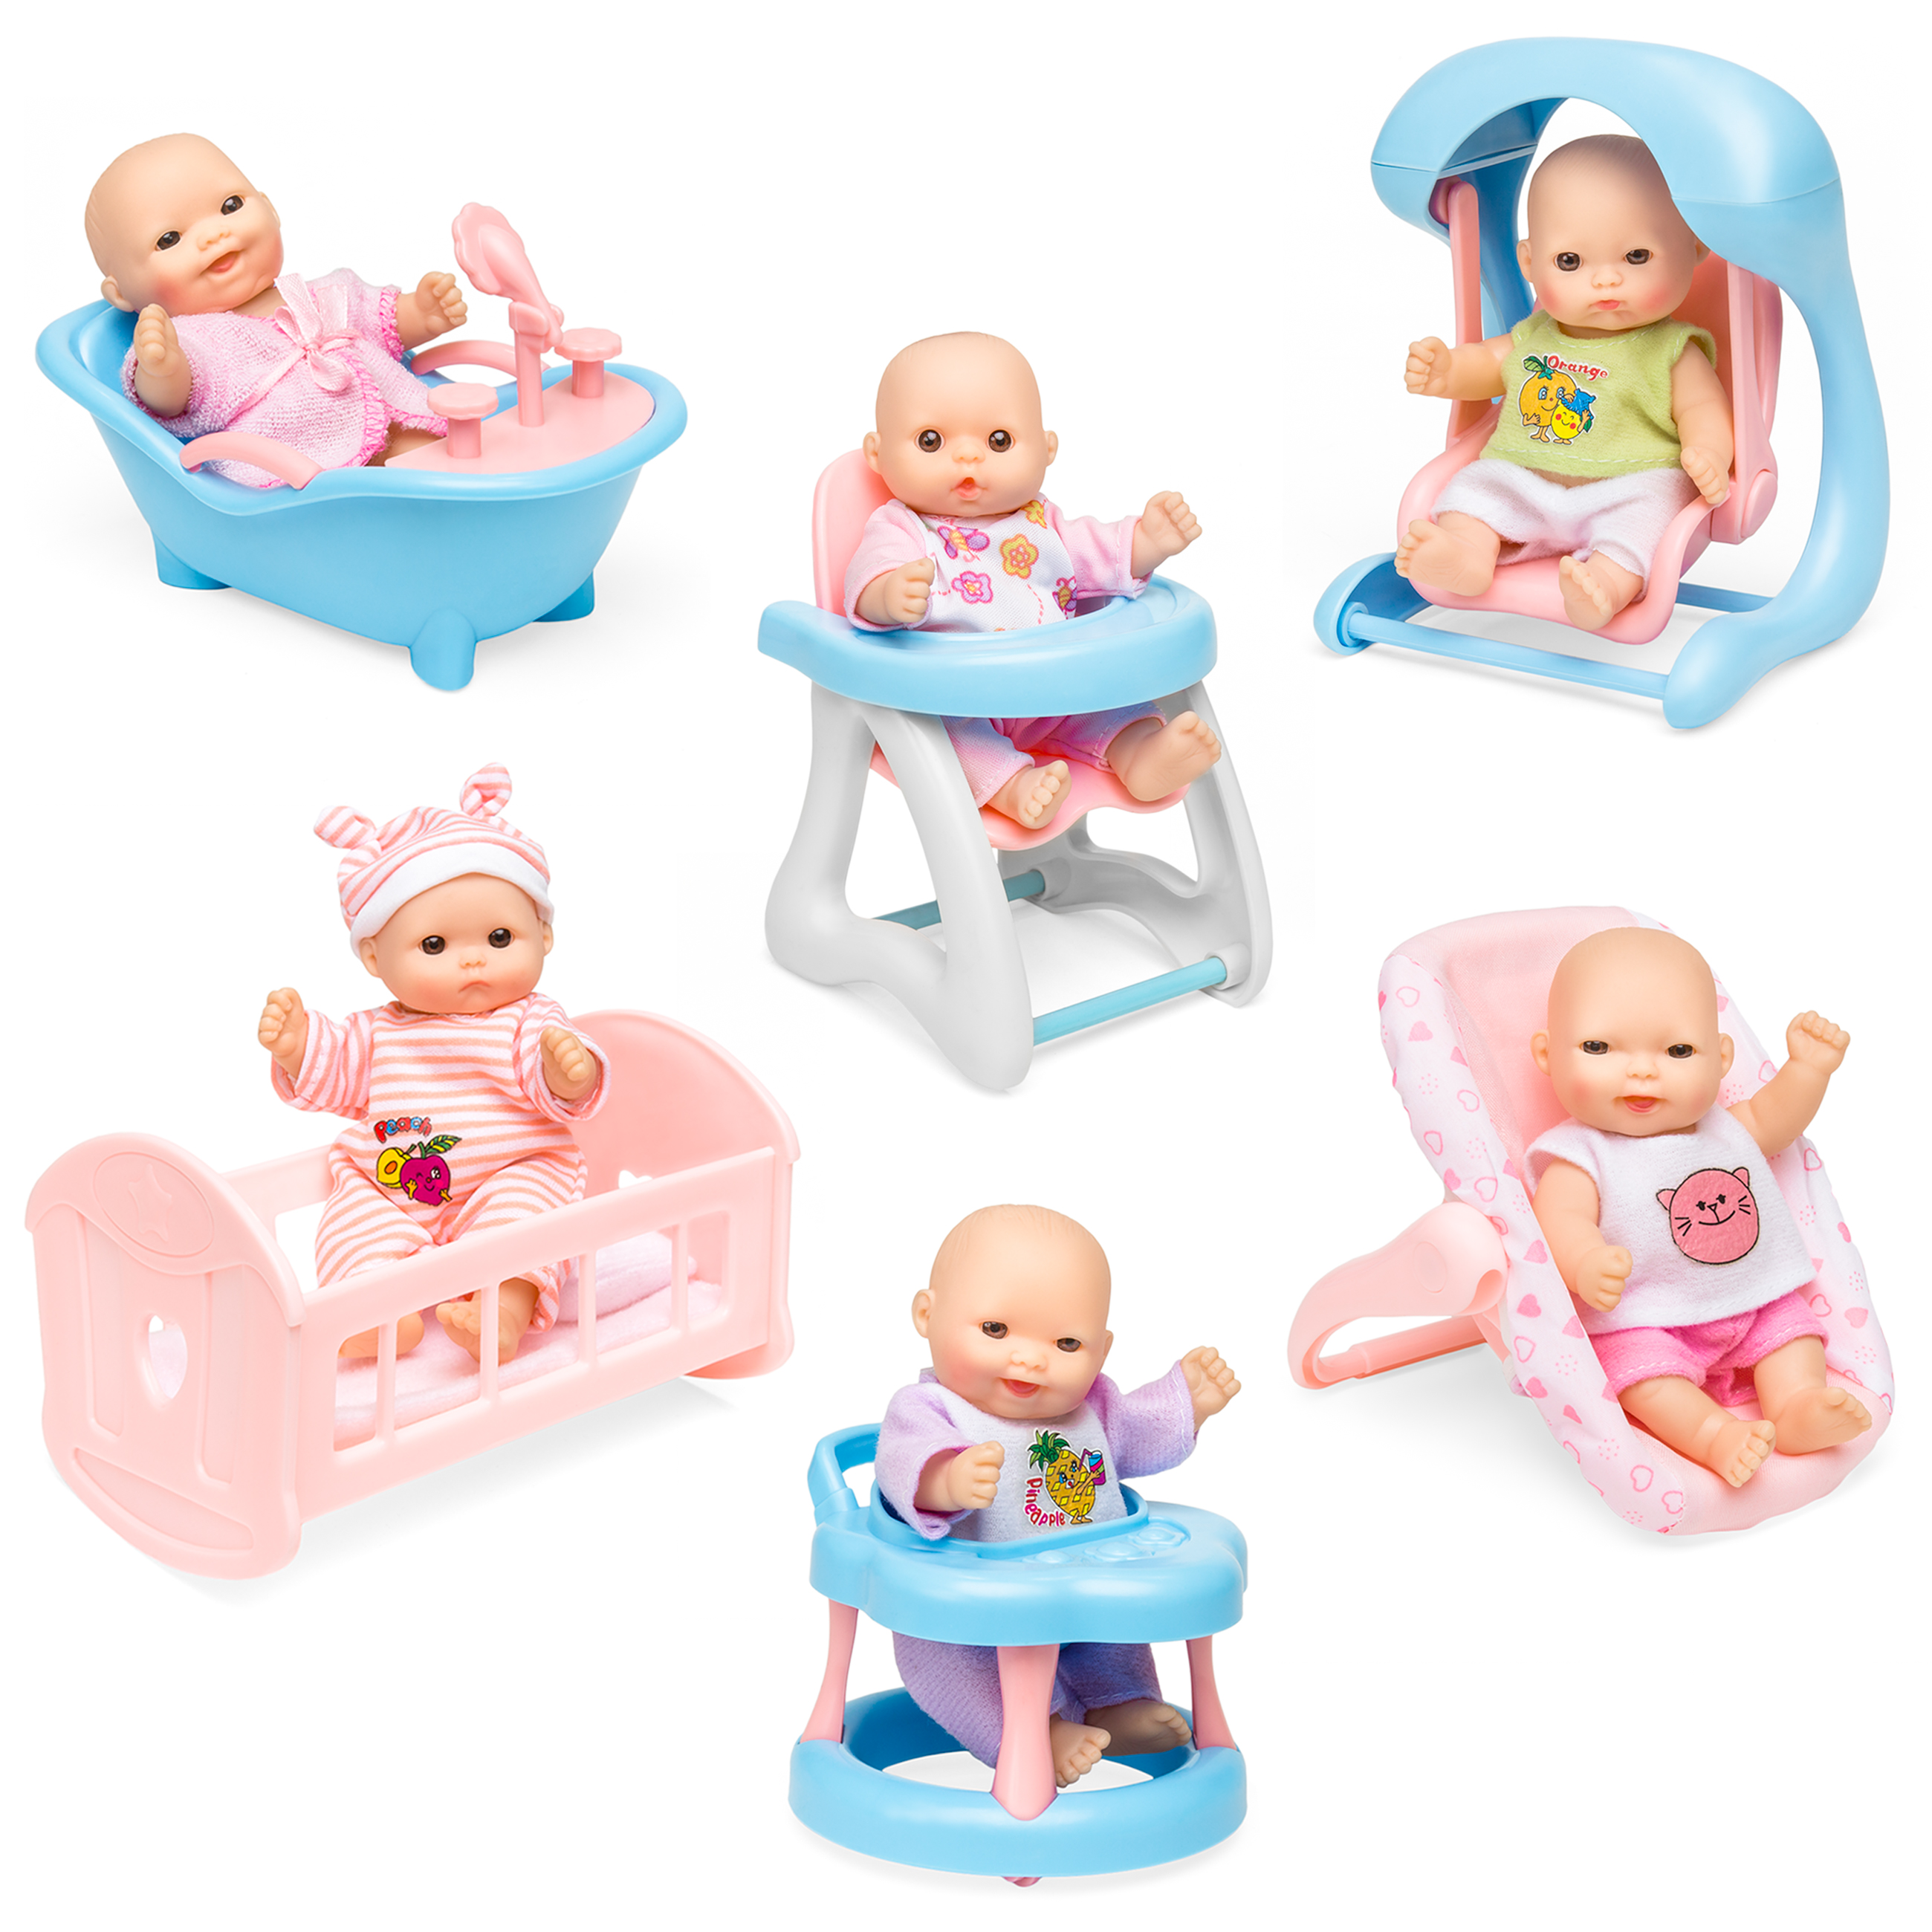 Baby Doll Accessories Playset Crib Car Seat Swing High Chair 4 Piece Play Set